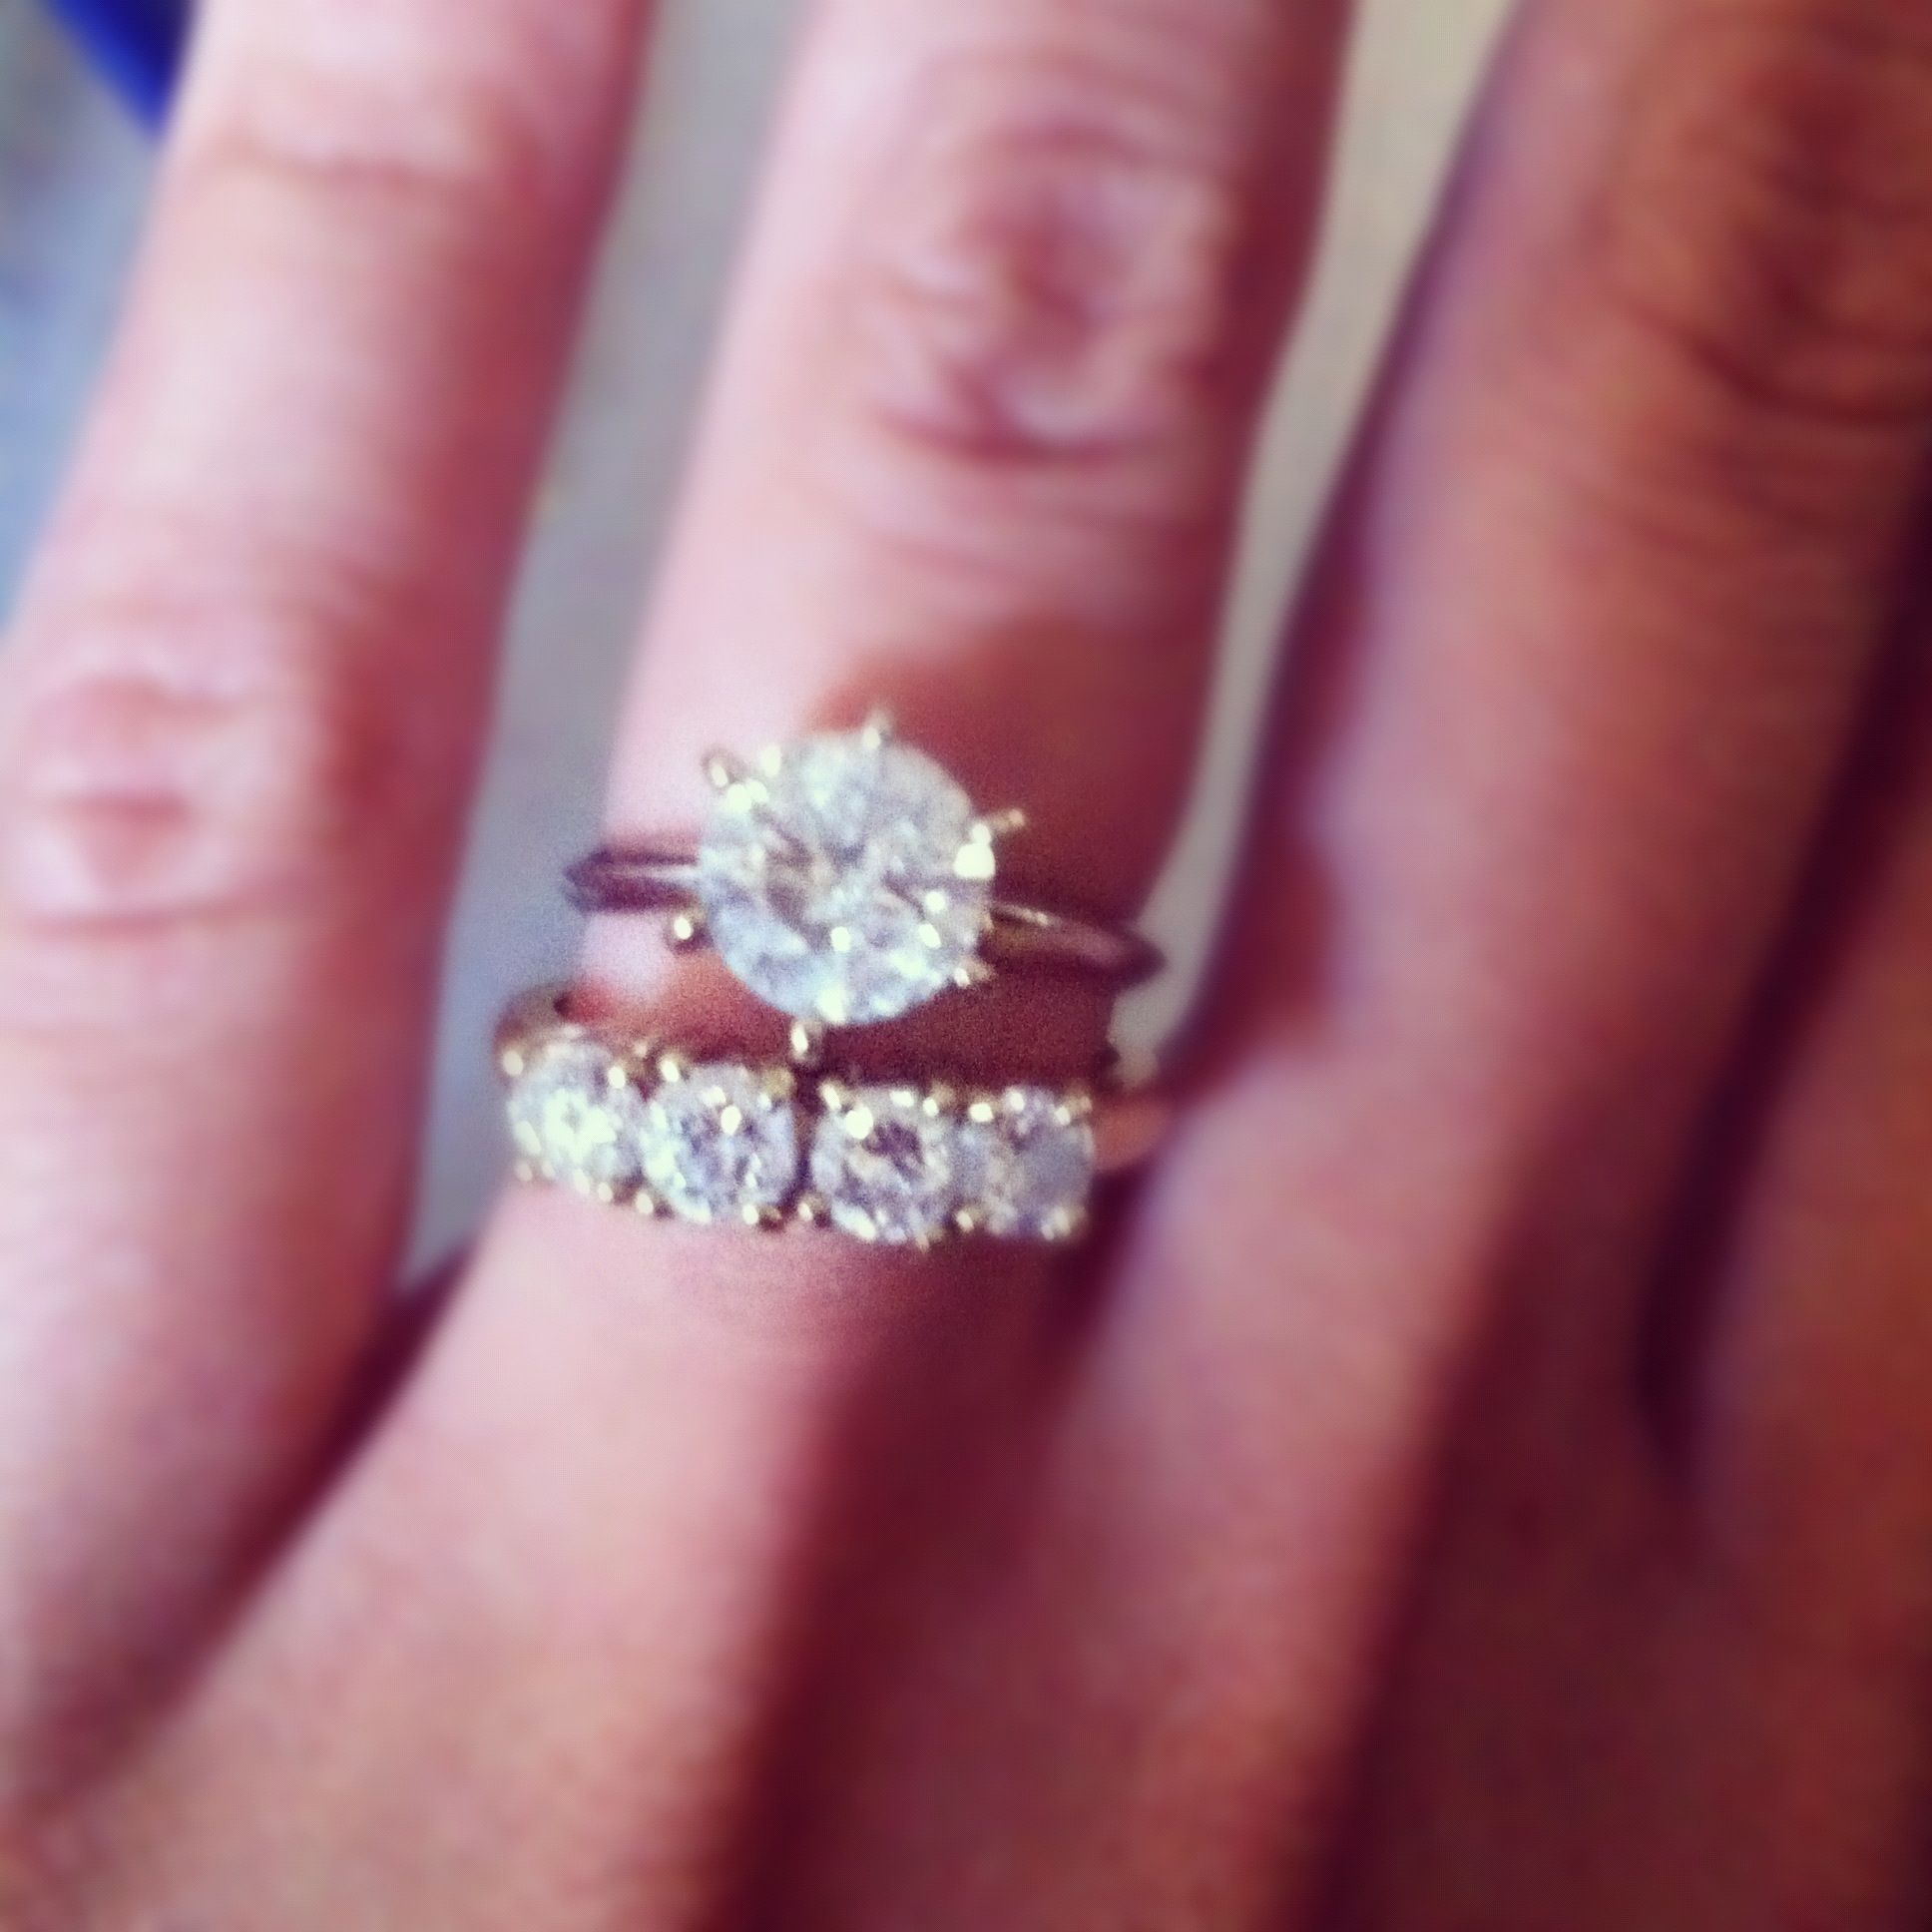 Best Of Floating Diamond solitaire Engagement Ring - Best Jewelry